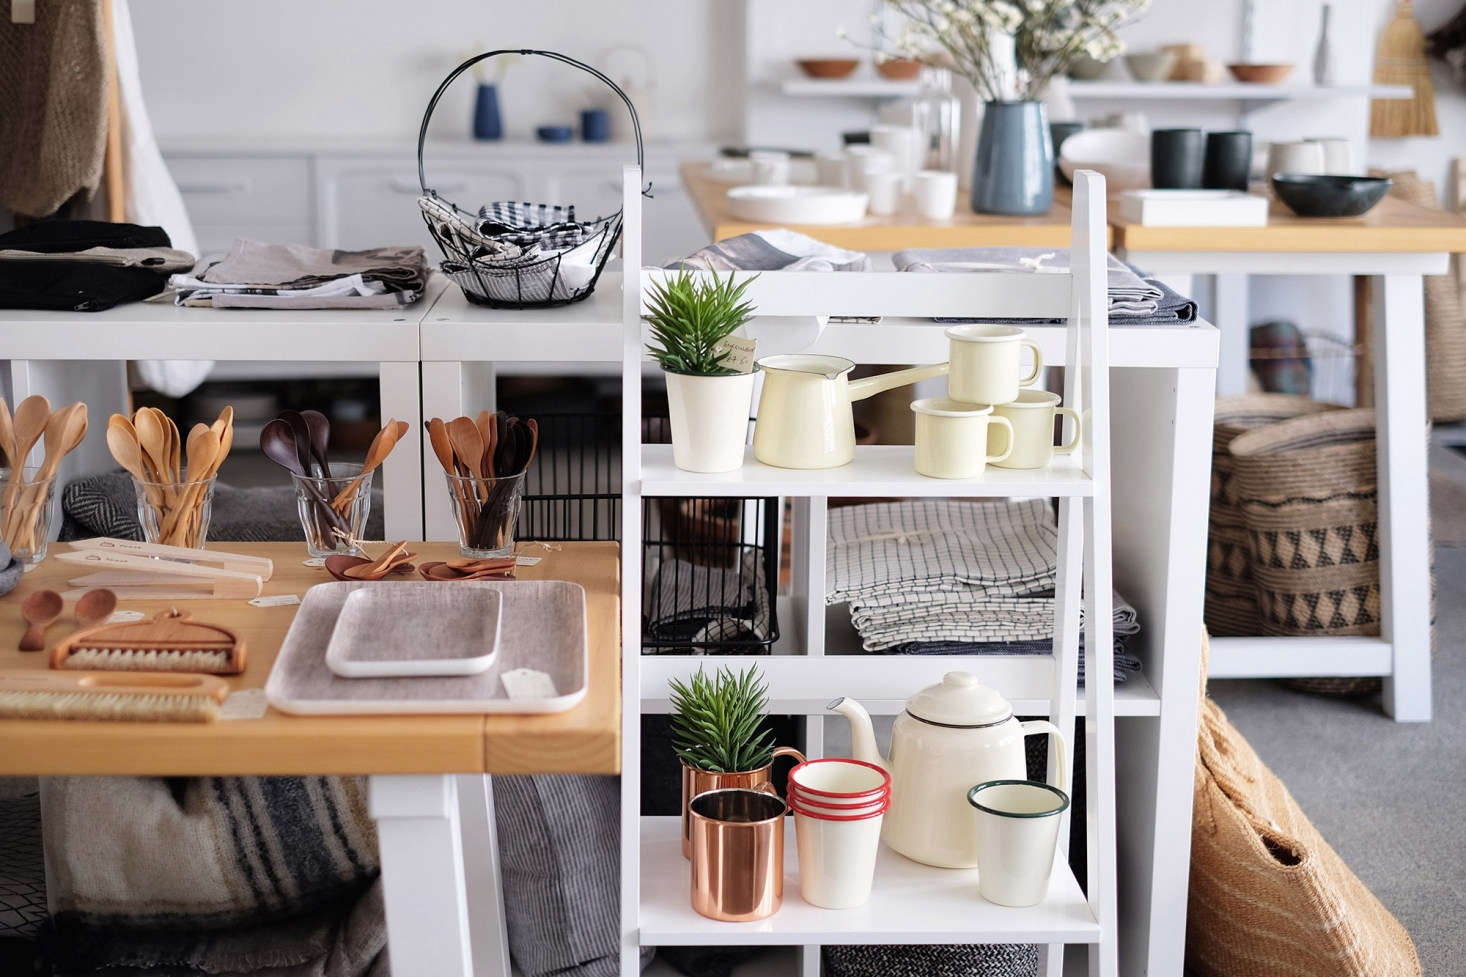 No. 56 offers a variety of wares from Remodelista favorites Falcon Enamelware, Fog Linen Work, and Iris Hantverk.